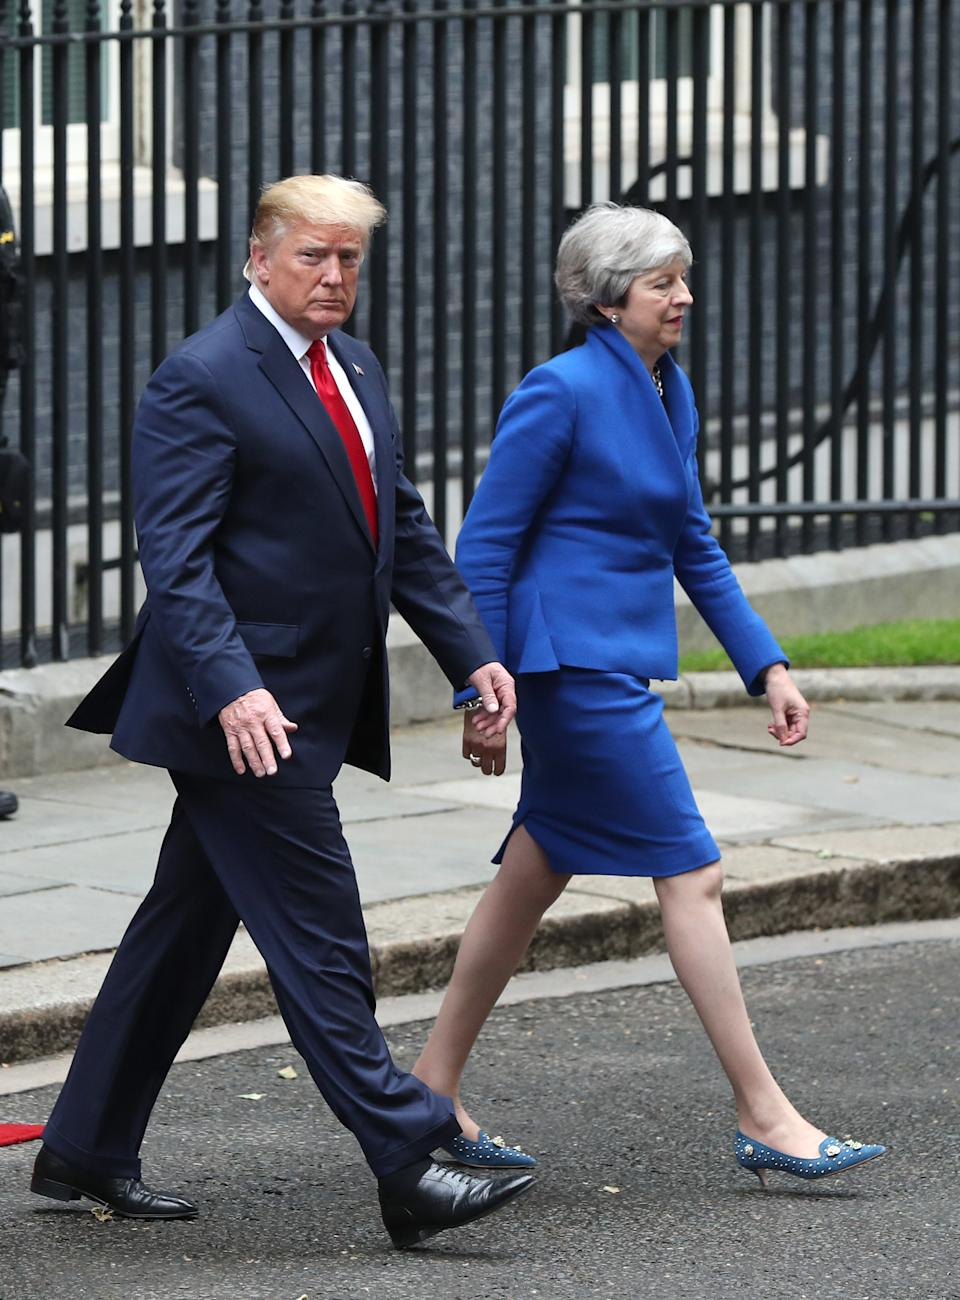 Prime Minister Theresa May with US President Donald Trump leave Downing Street in London for a joint press conference at the Foreign & Commonwealth Office, on the second day of his state visit to the UK.